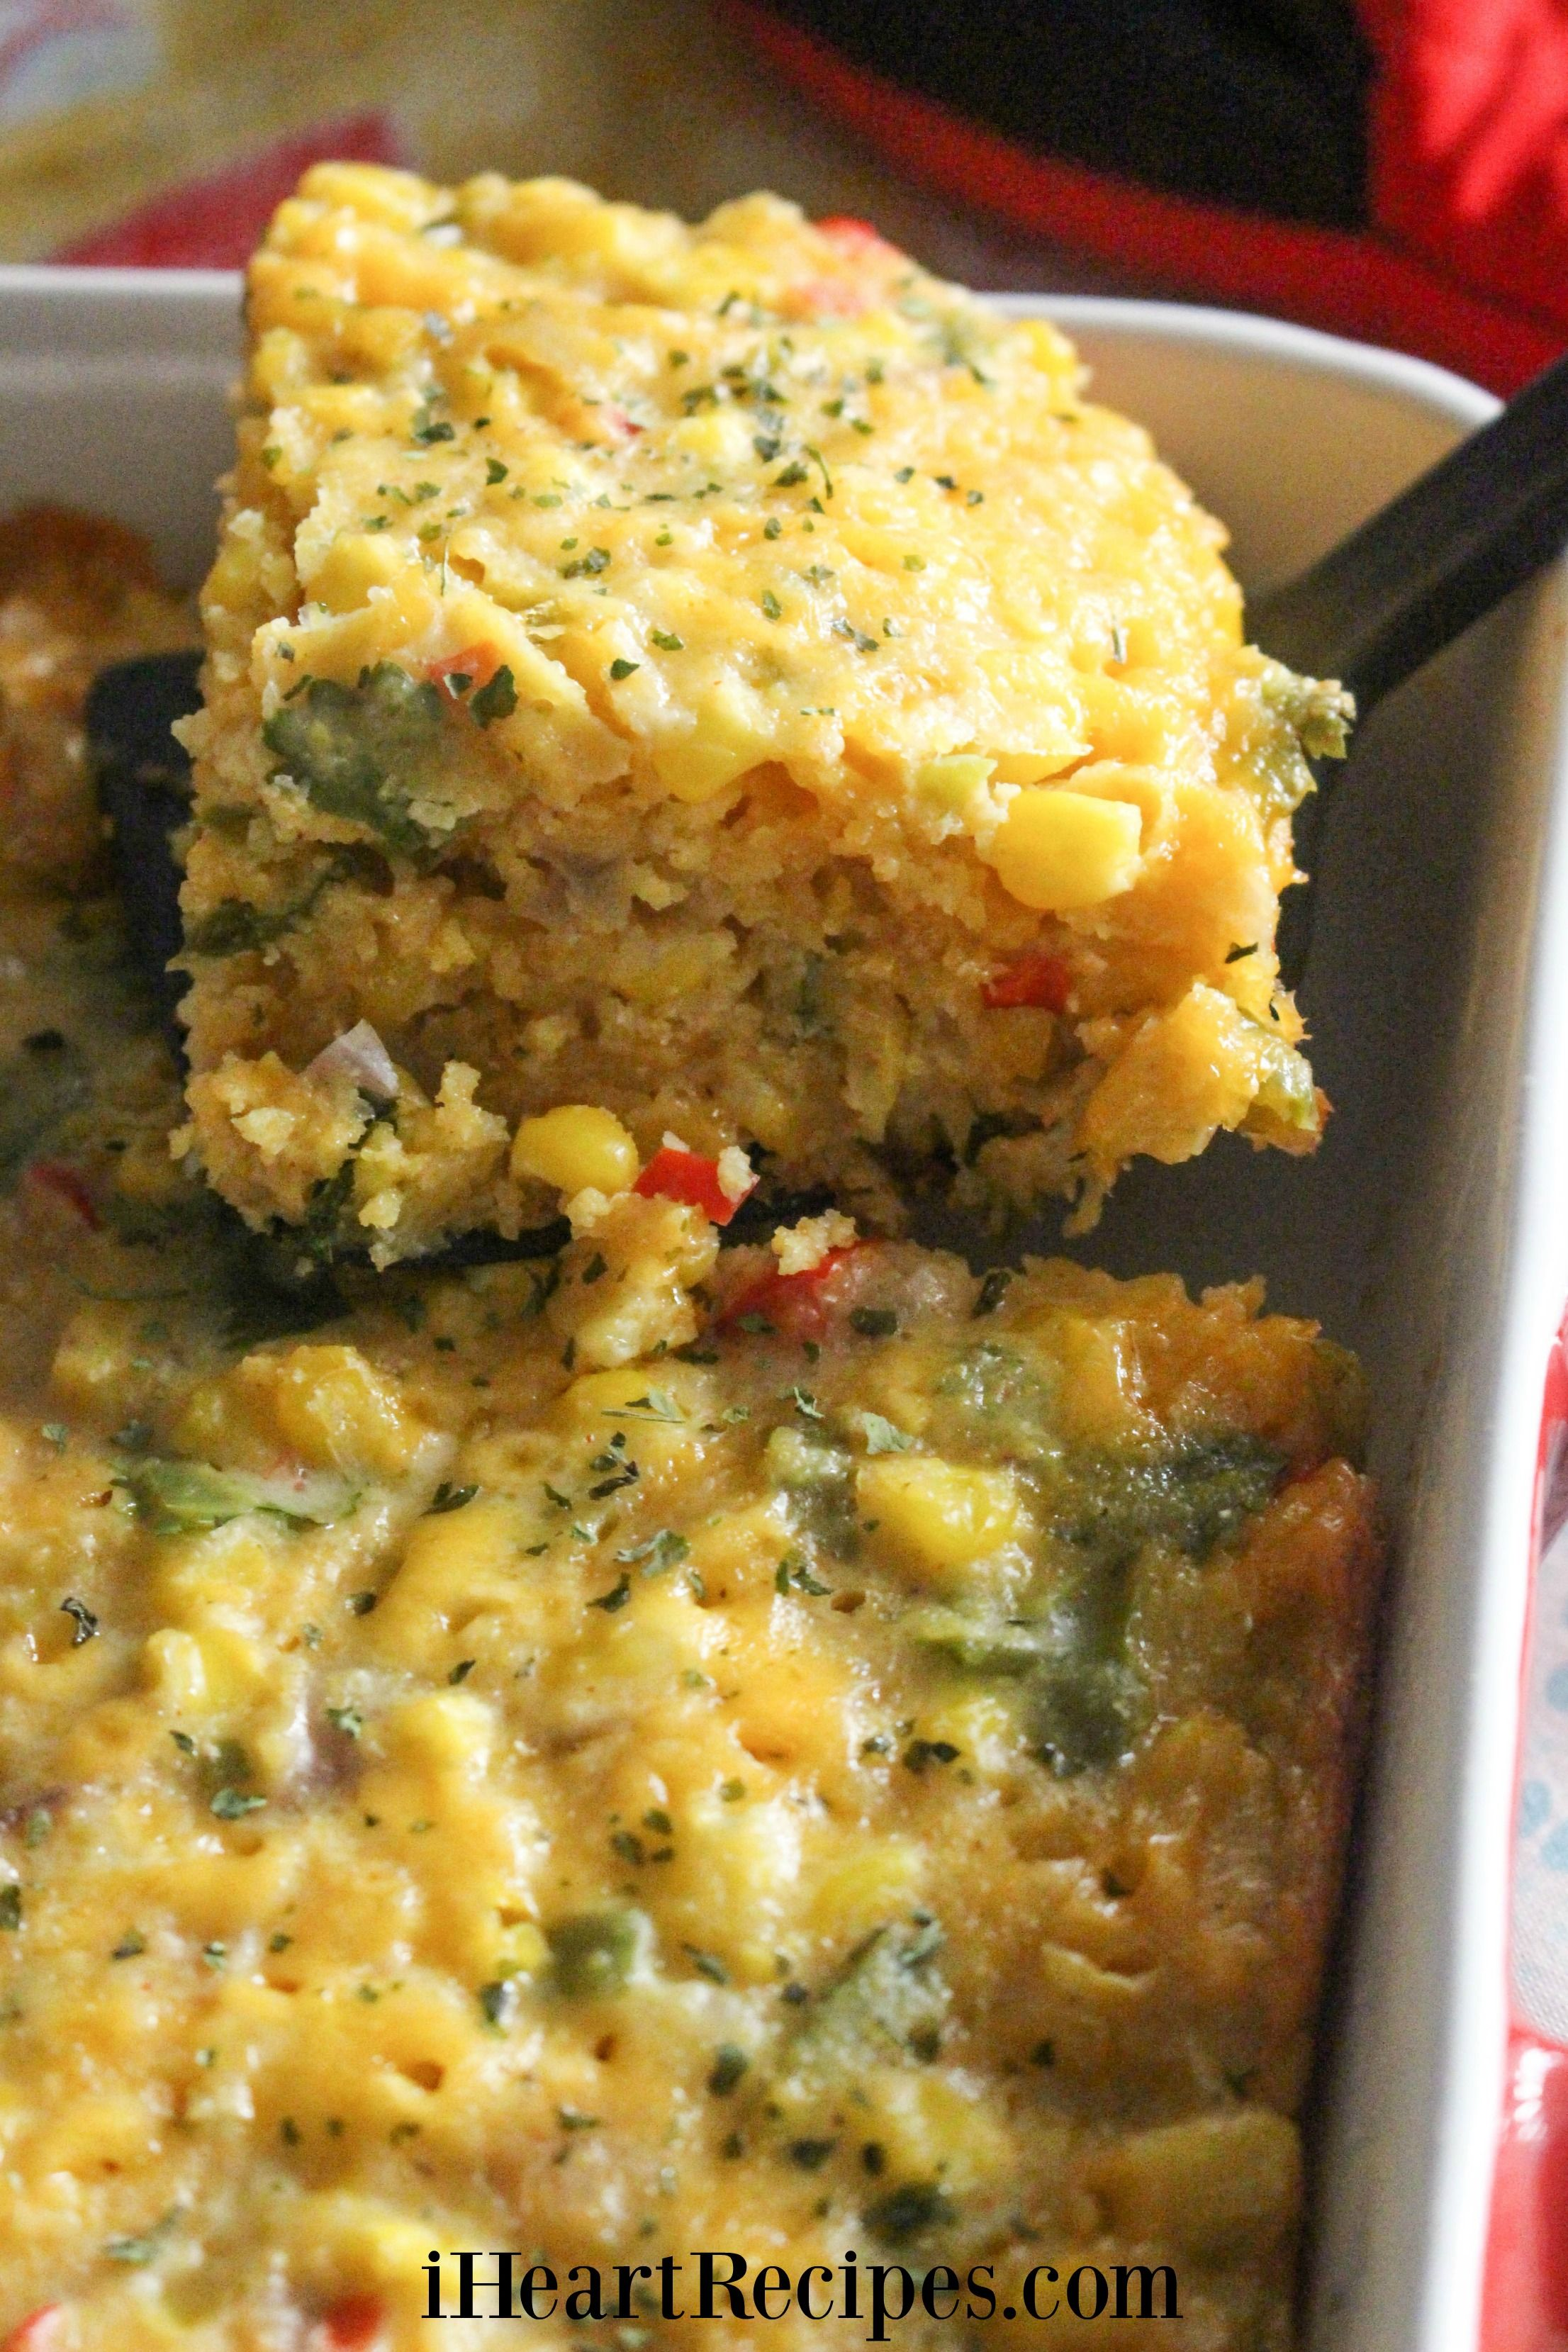 Easy tex mex corn casserole made with frozen corn cilantro onions easy tex mex corn casserole made with frozen corn cilantro onions cheese soul food recipesside dish forumfinder Gallery